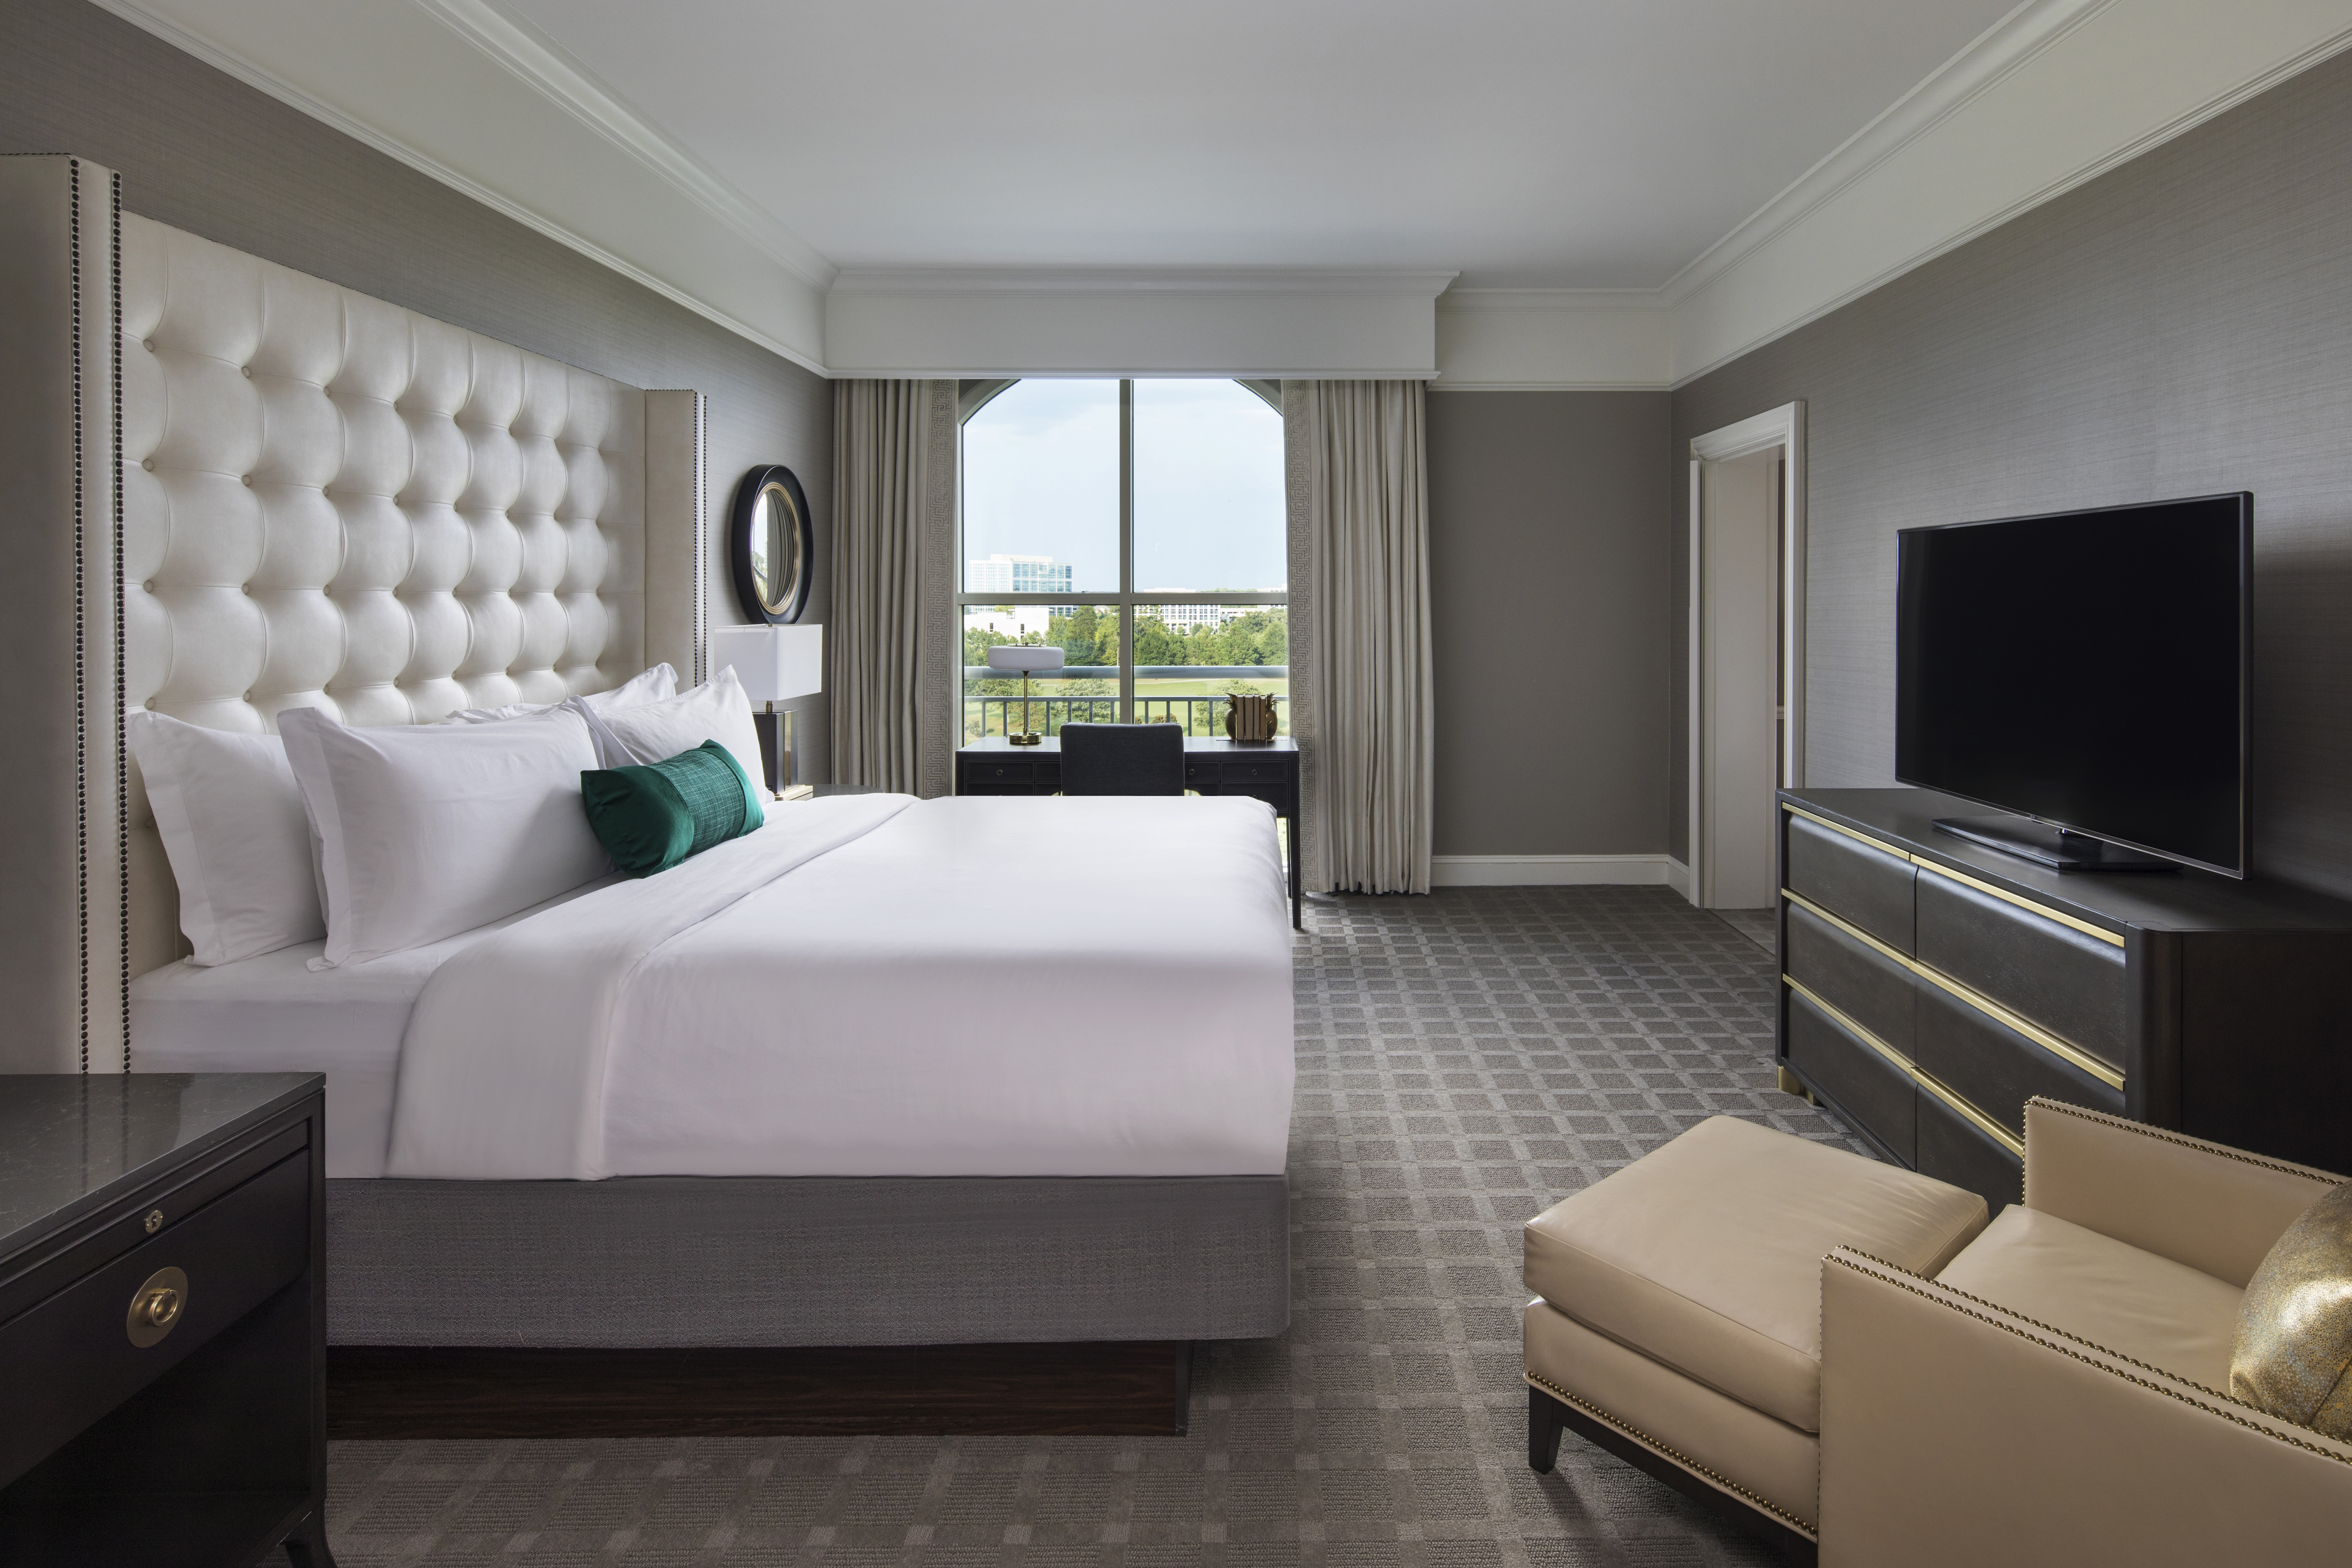 Hotels Amp Accommodations In Charlotte Nc At The Ballantyne